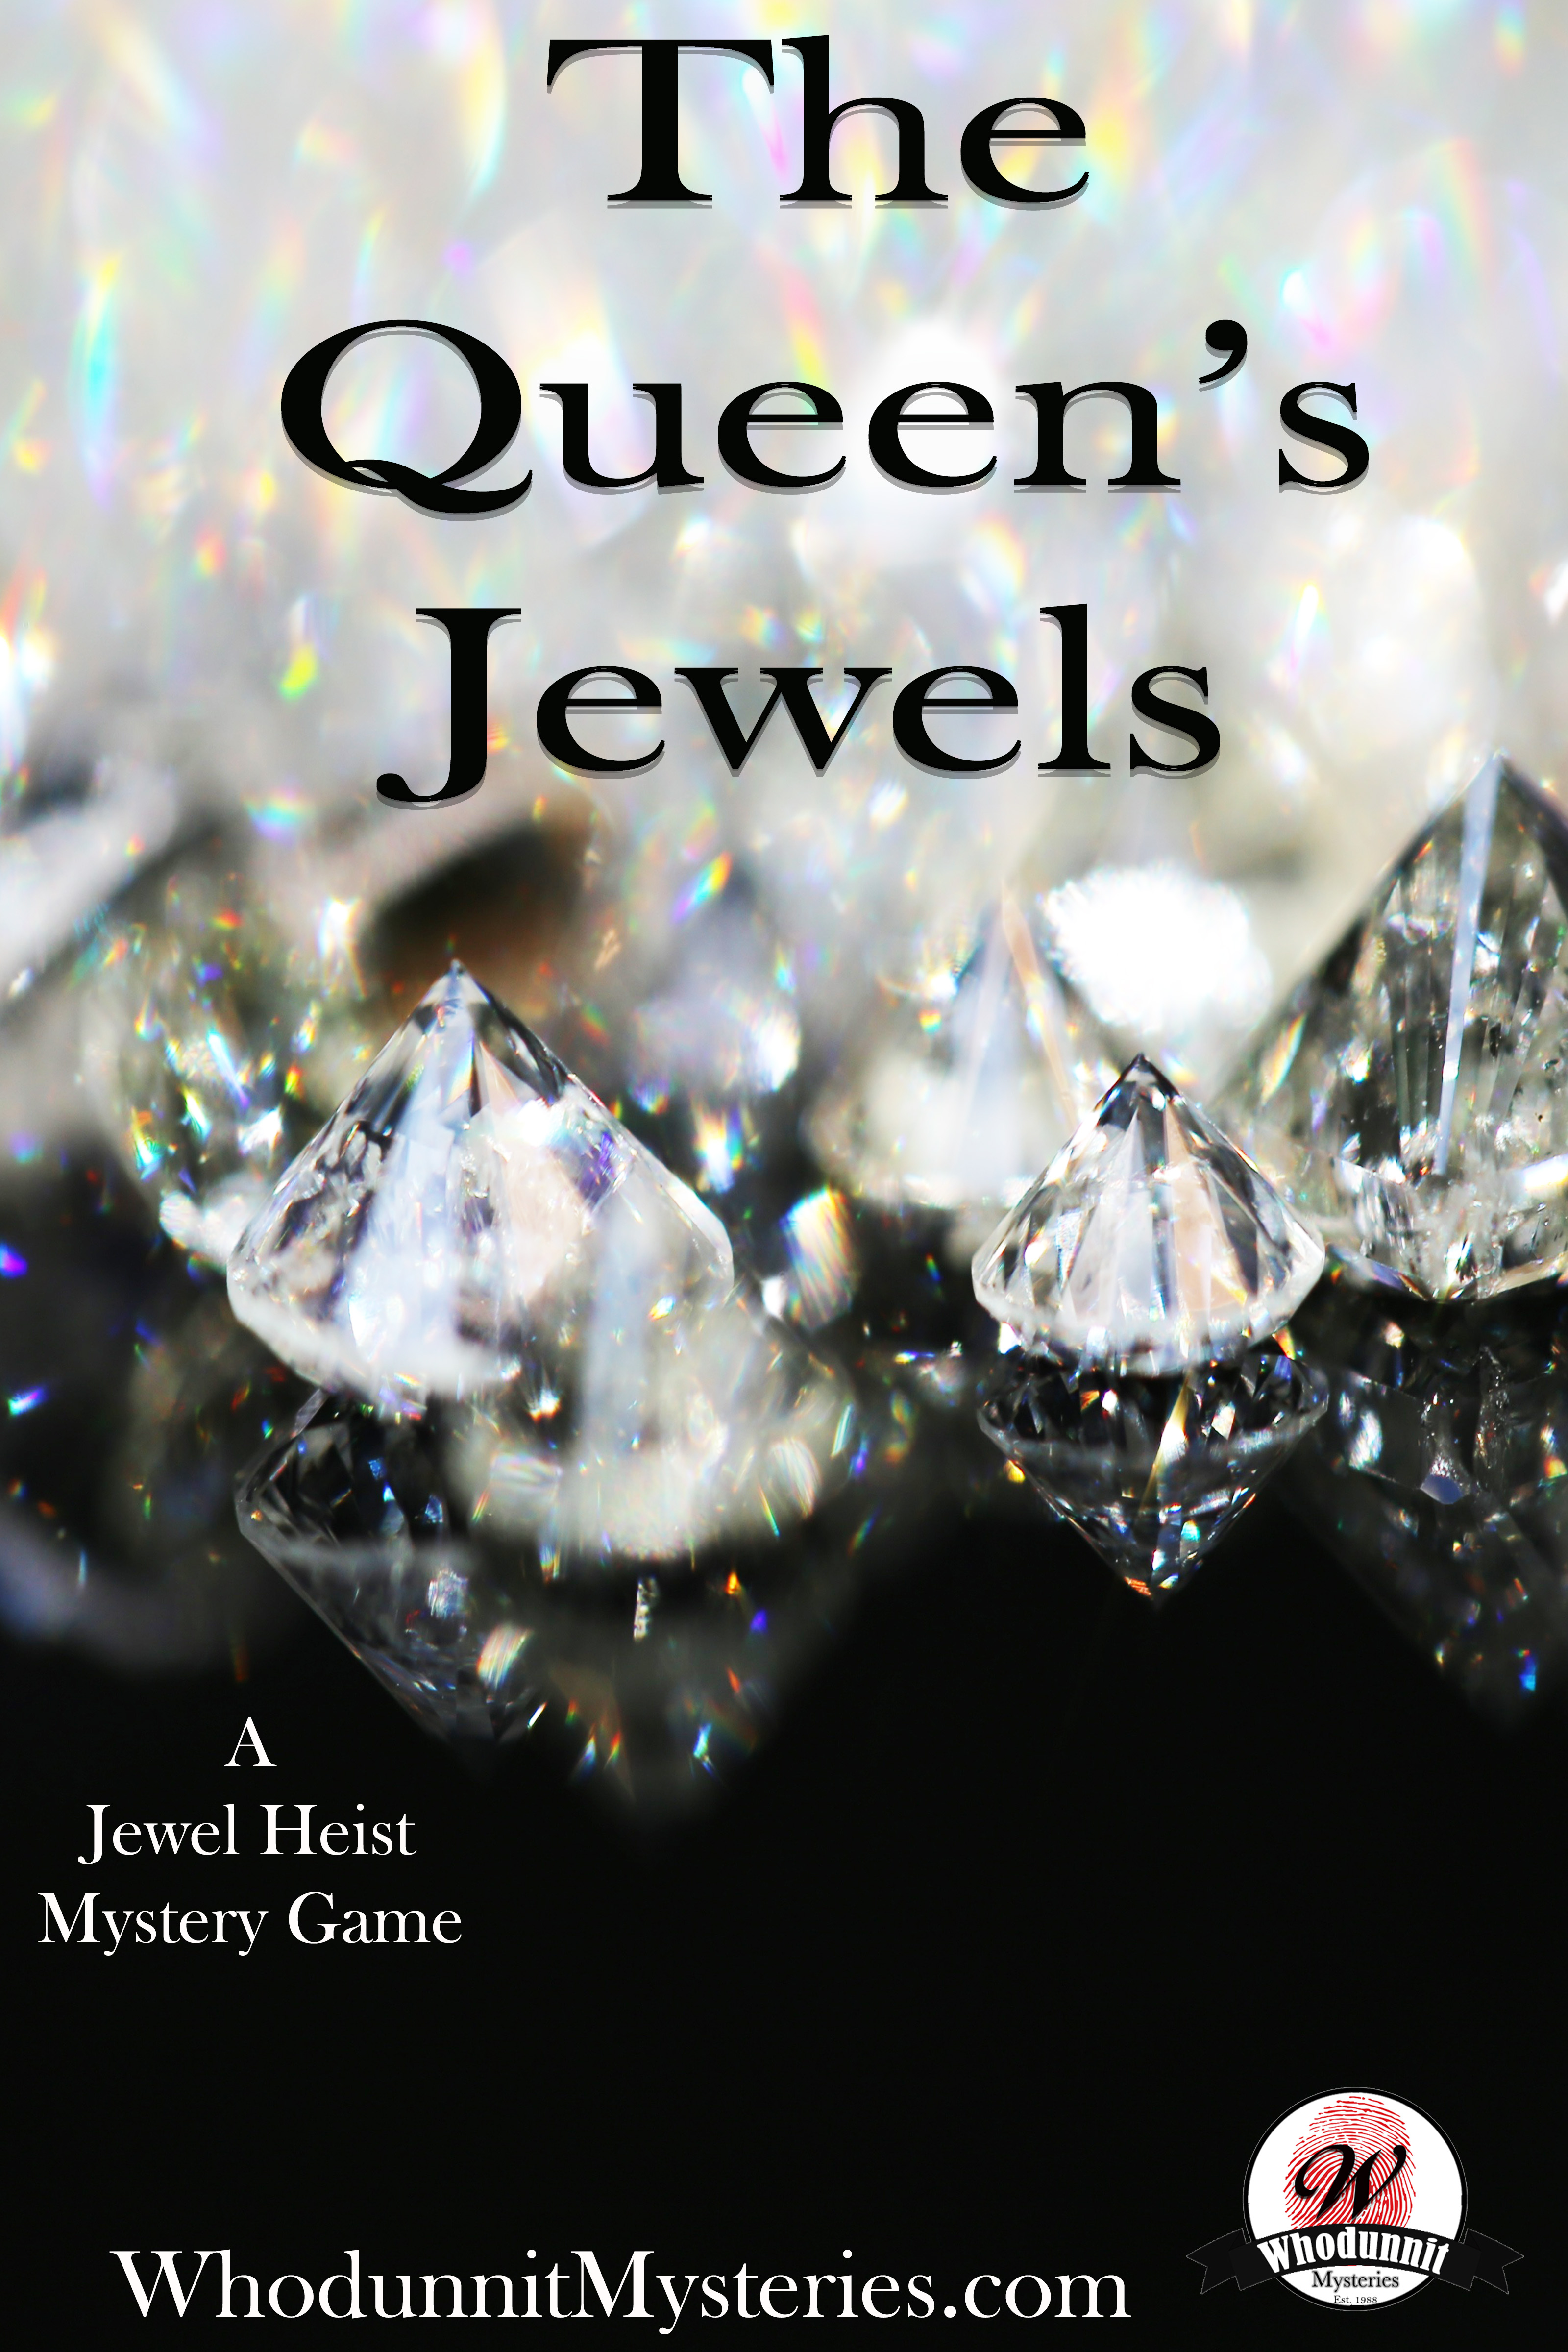 The Queen's Jewels: A Thrilling New Year's Eve Costume Party Mystery